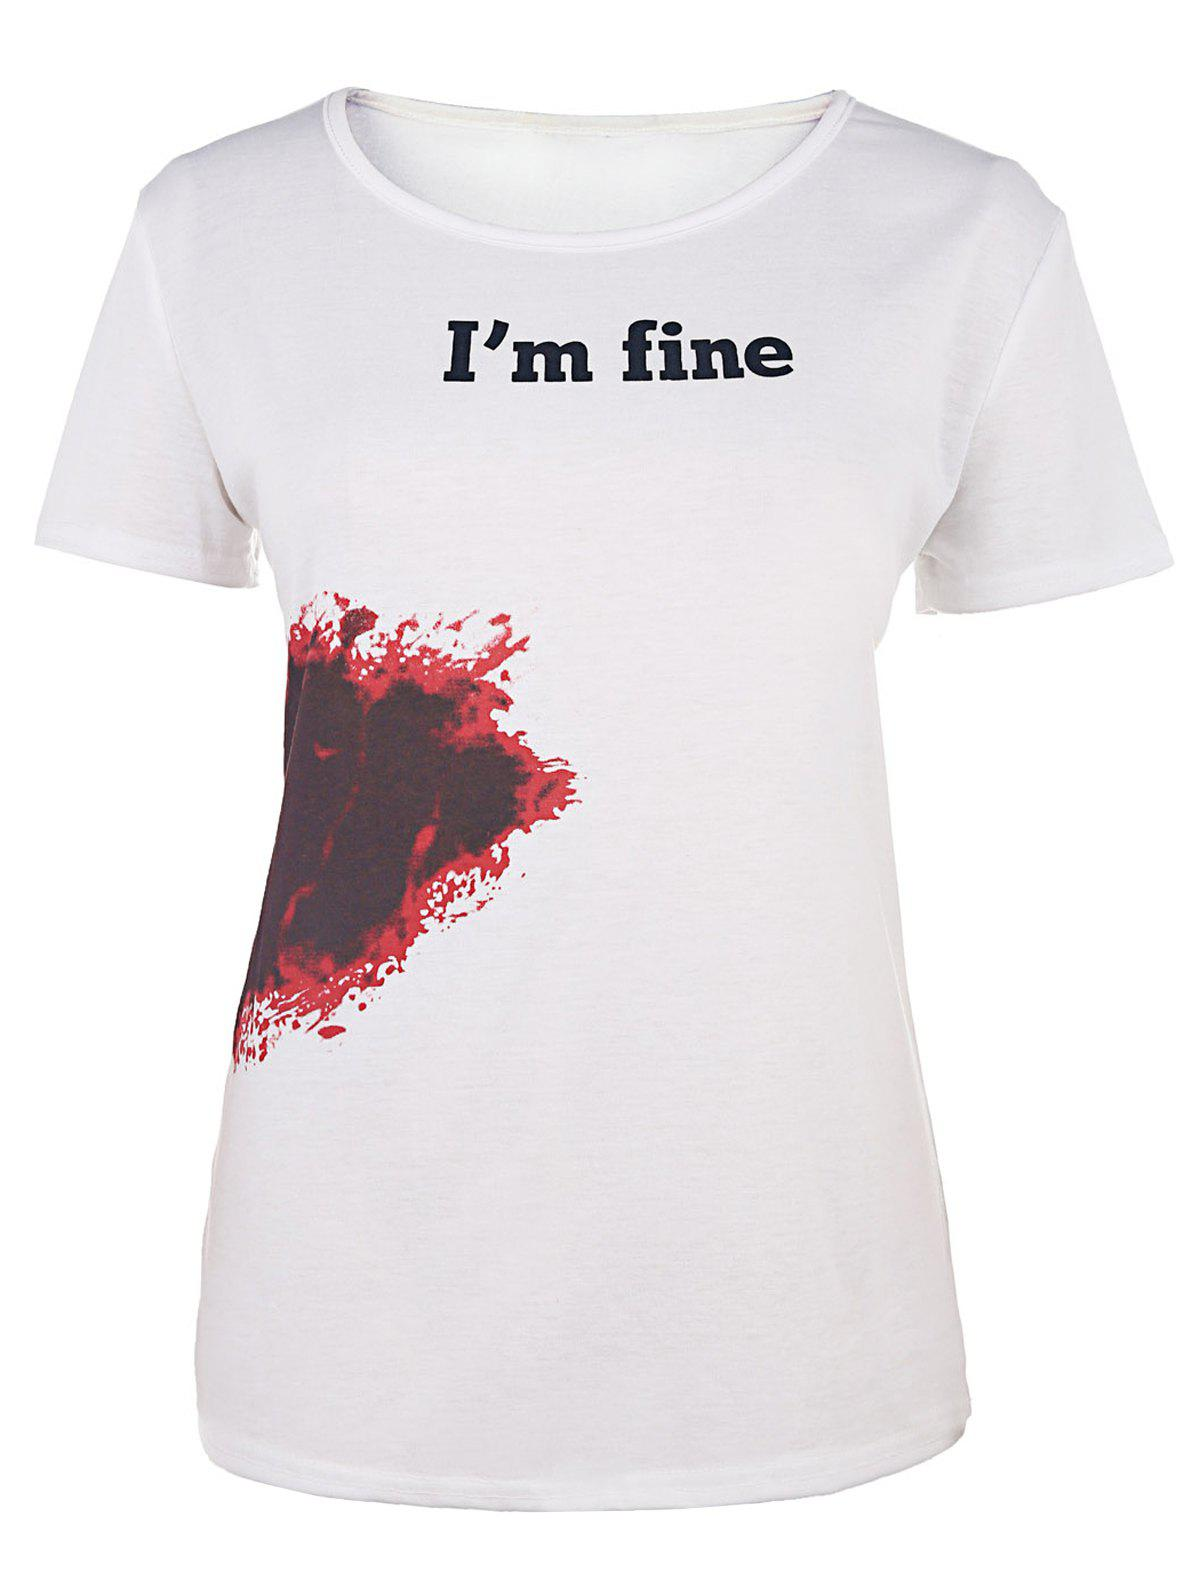 Casual Bloodstain Print Round Neck Short Sleeve T-Shirt For Women - WHITE L